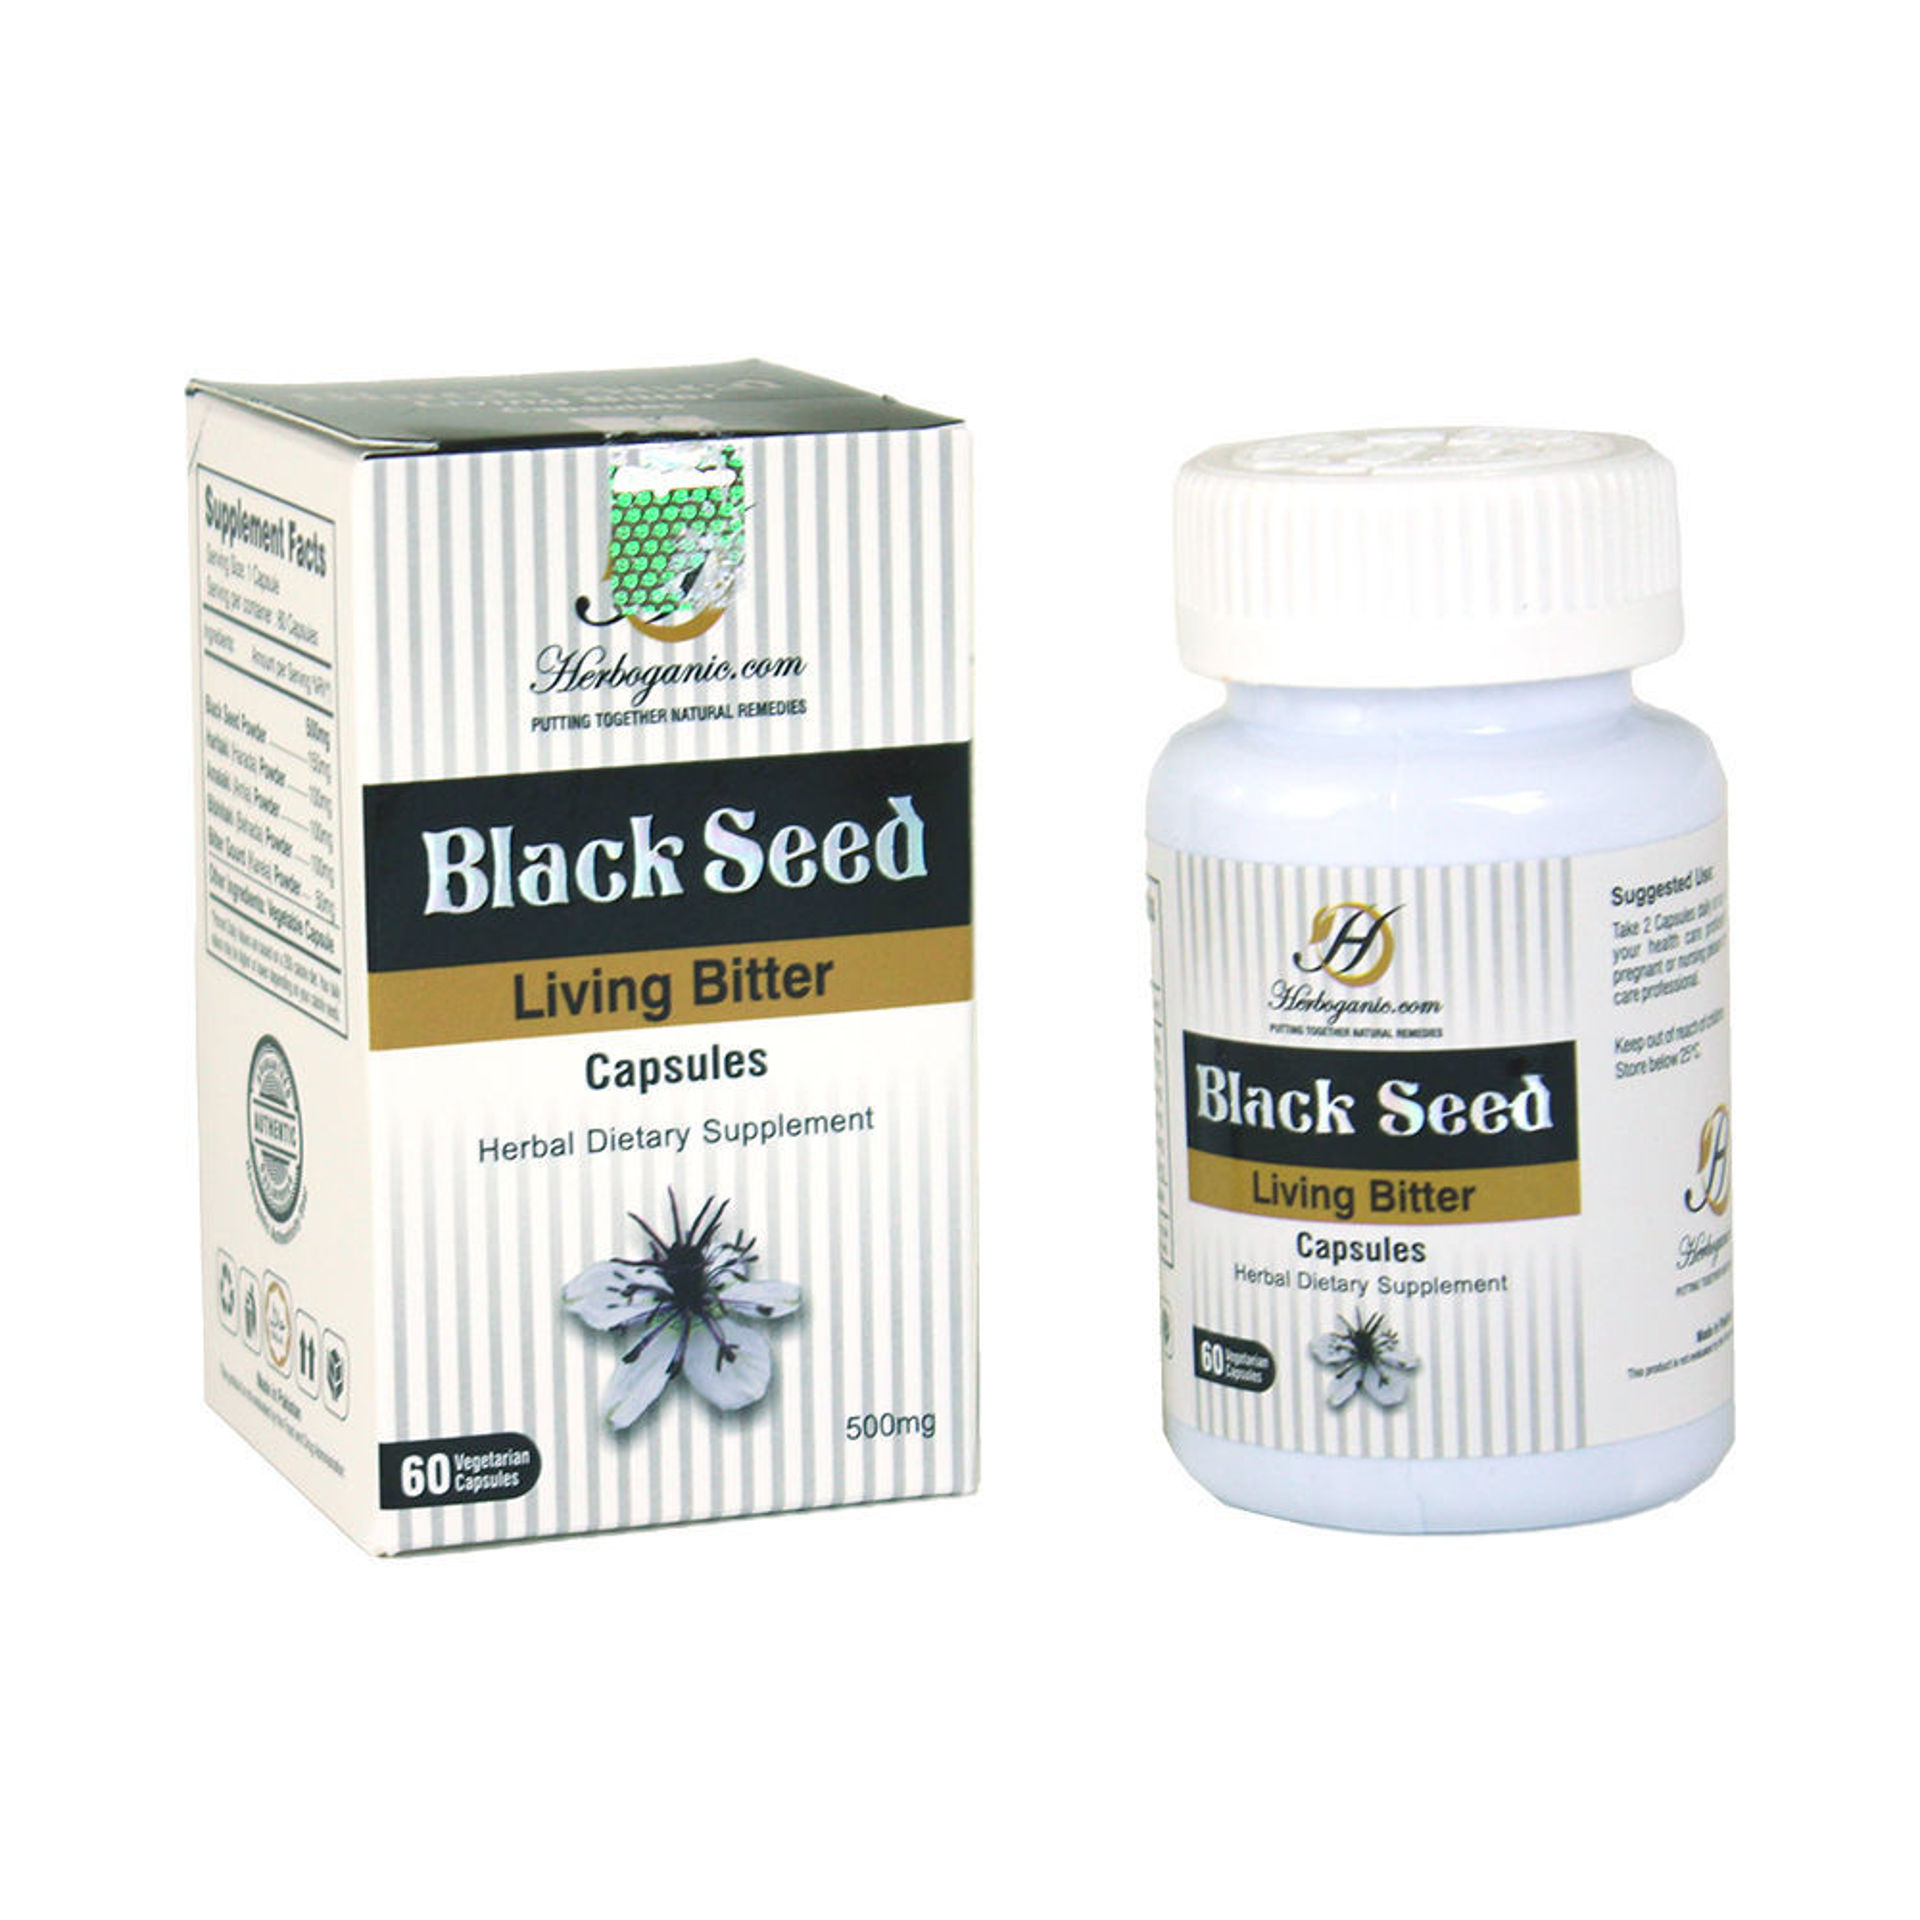 Picture of Black Seed Living Bitters Capsules